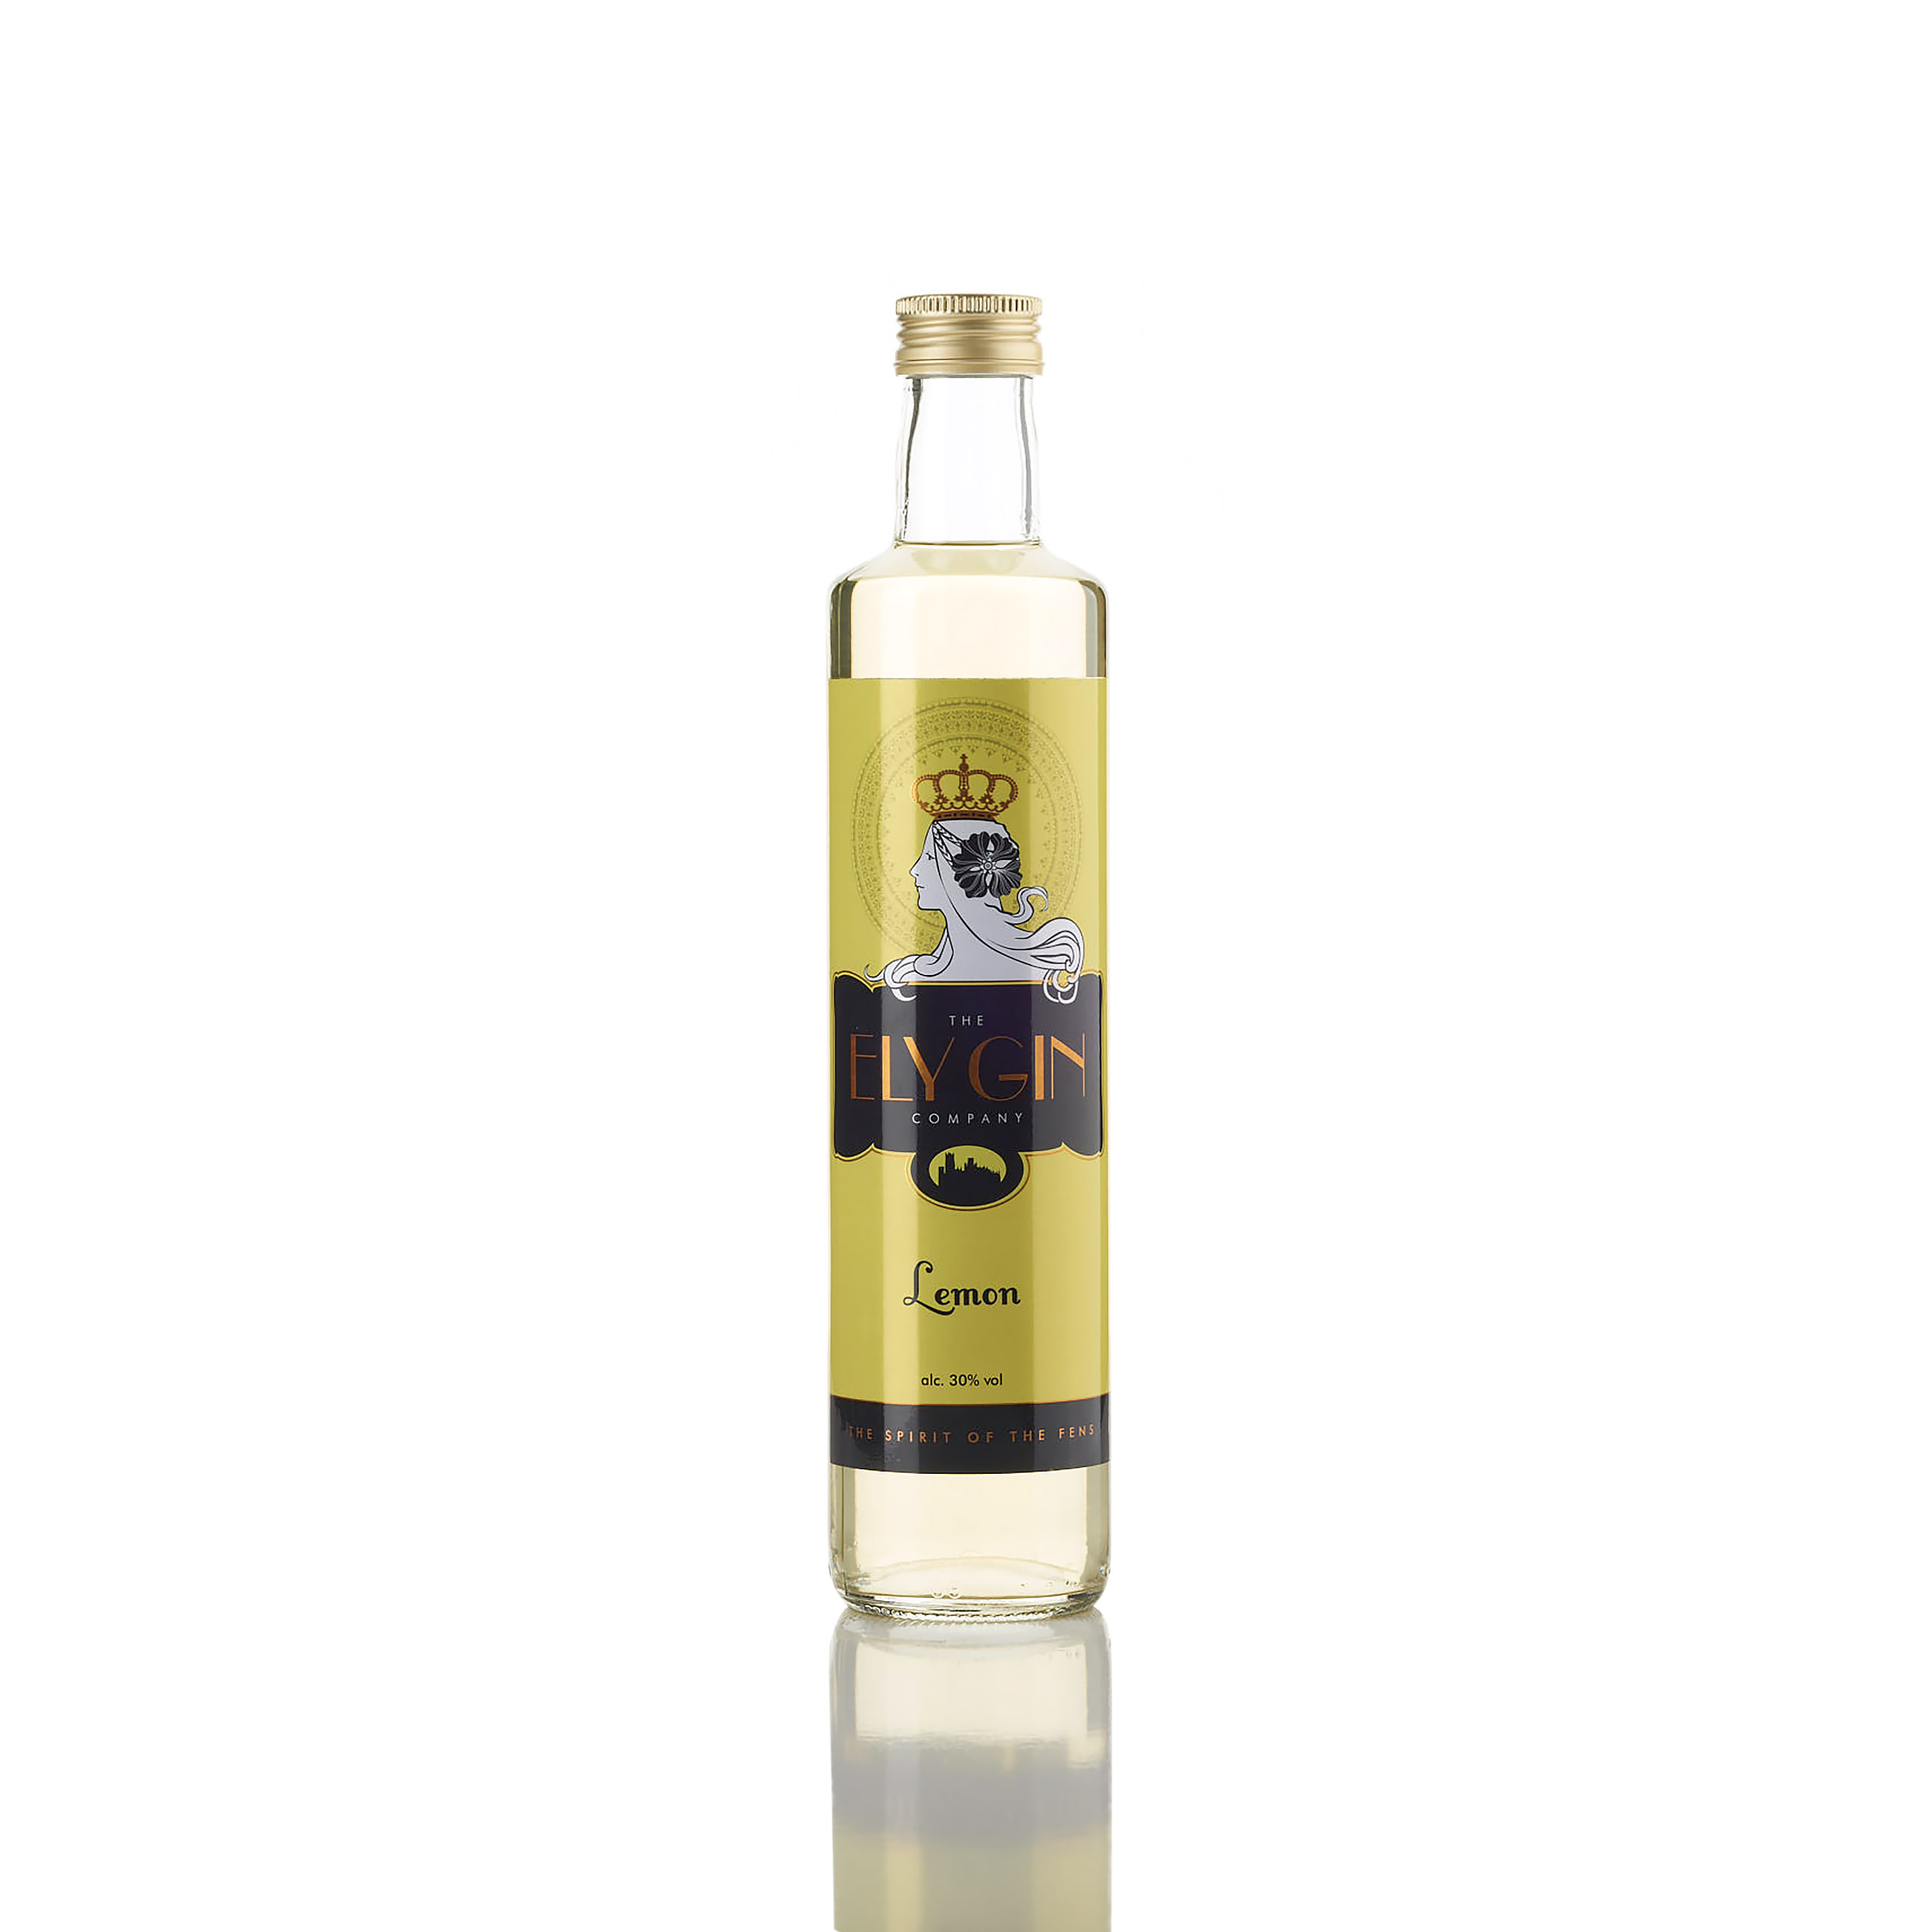 Ely Gin With Lemon 30% 500ml BBE May